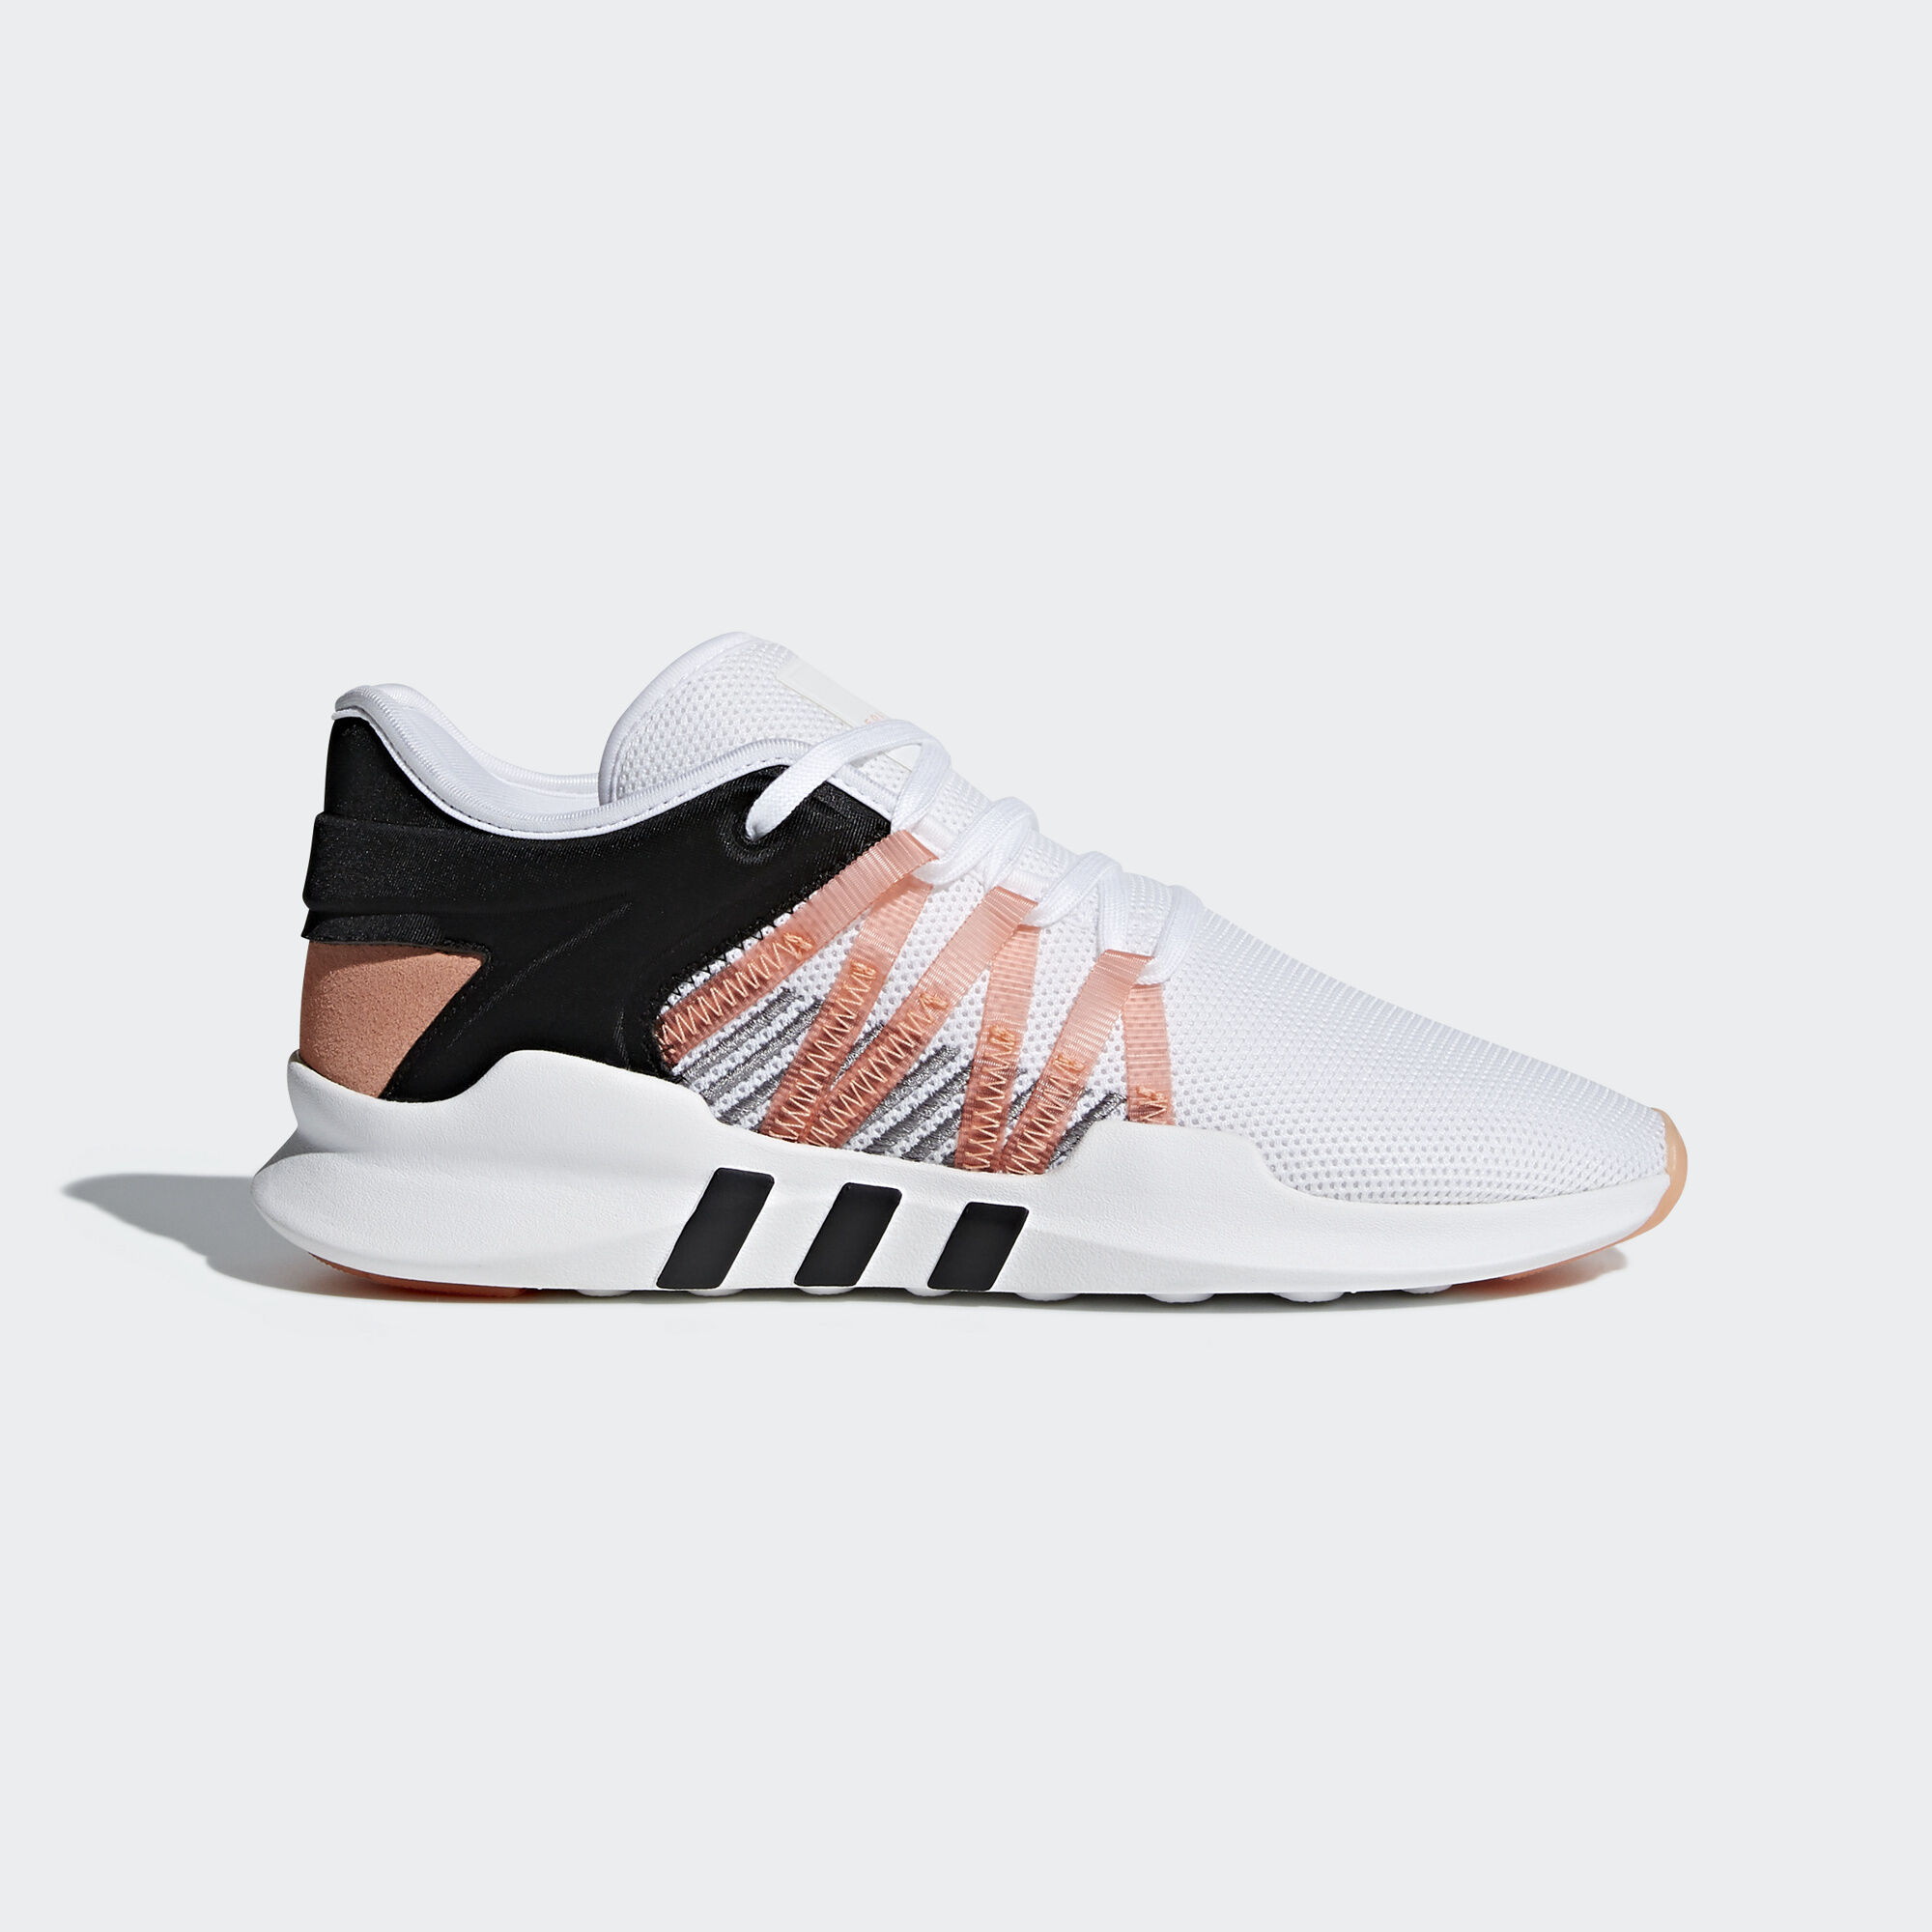 adidas originals eqt racing adv trainers in black and white